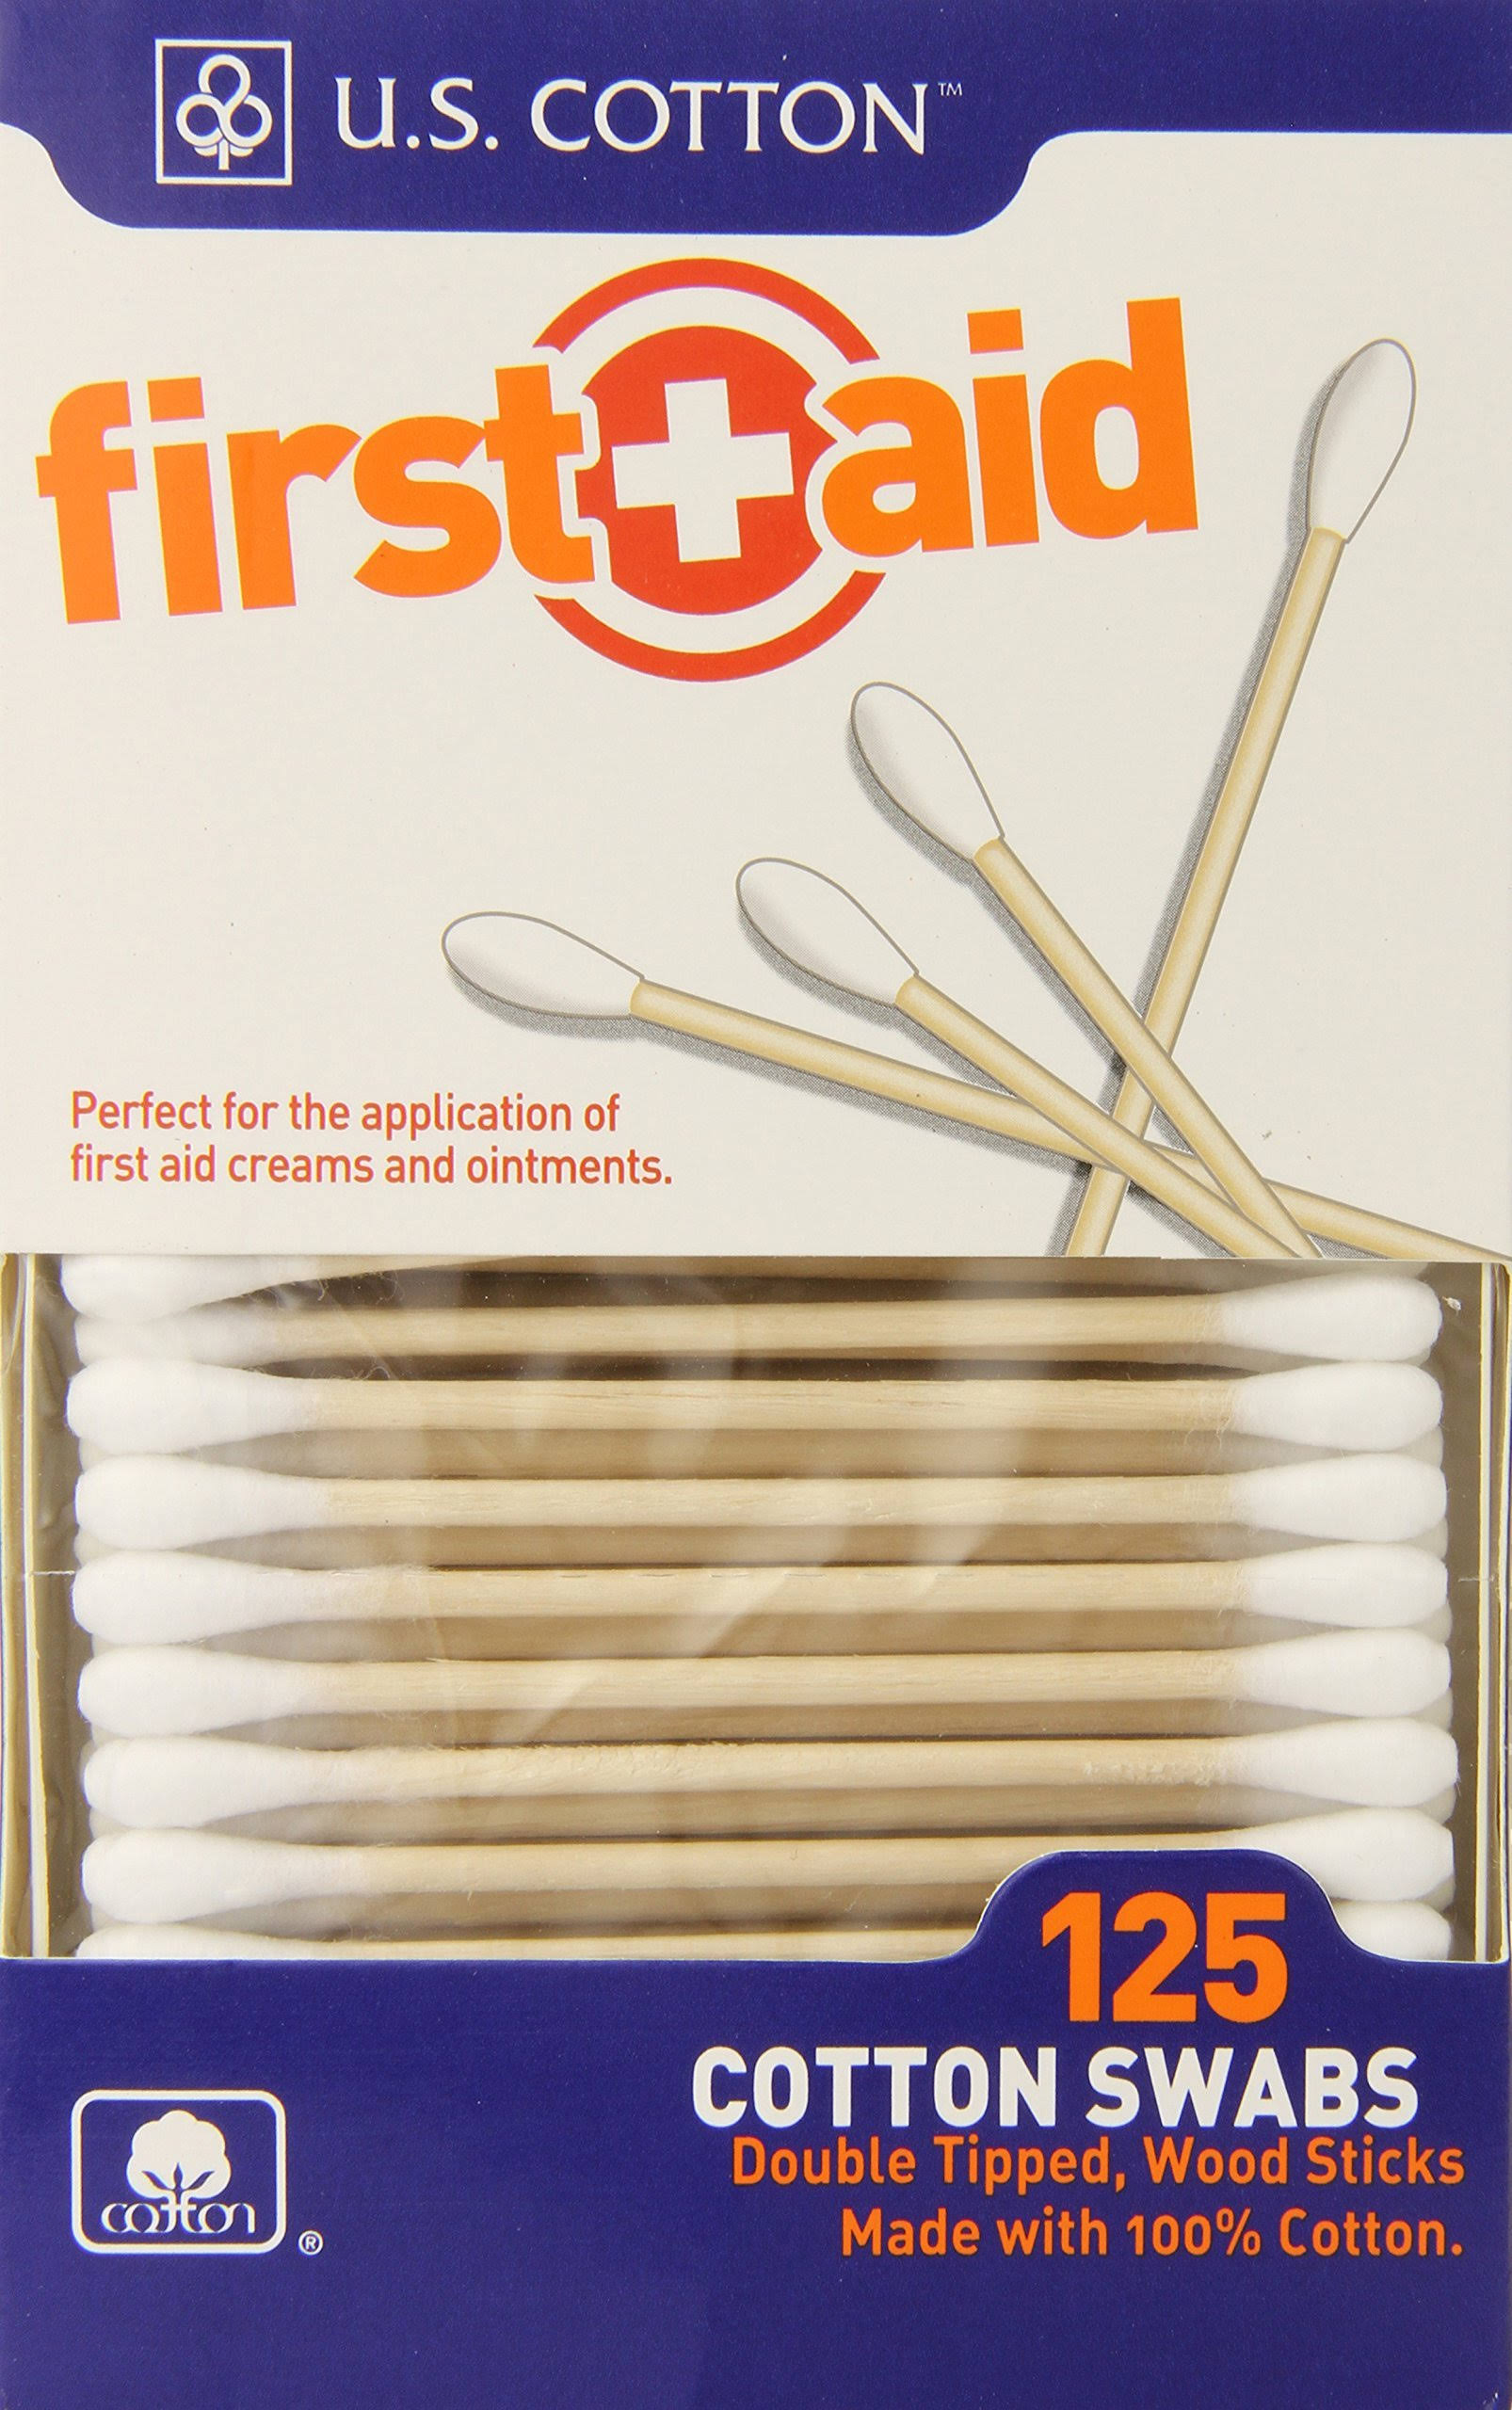 First Aid Cotton Swabs - 125 ct